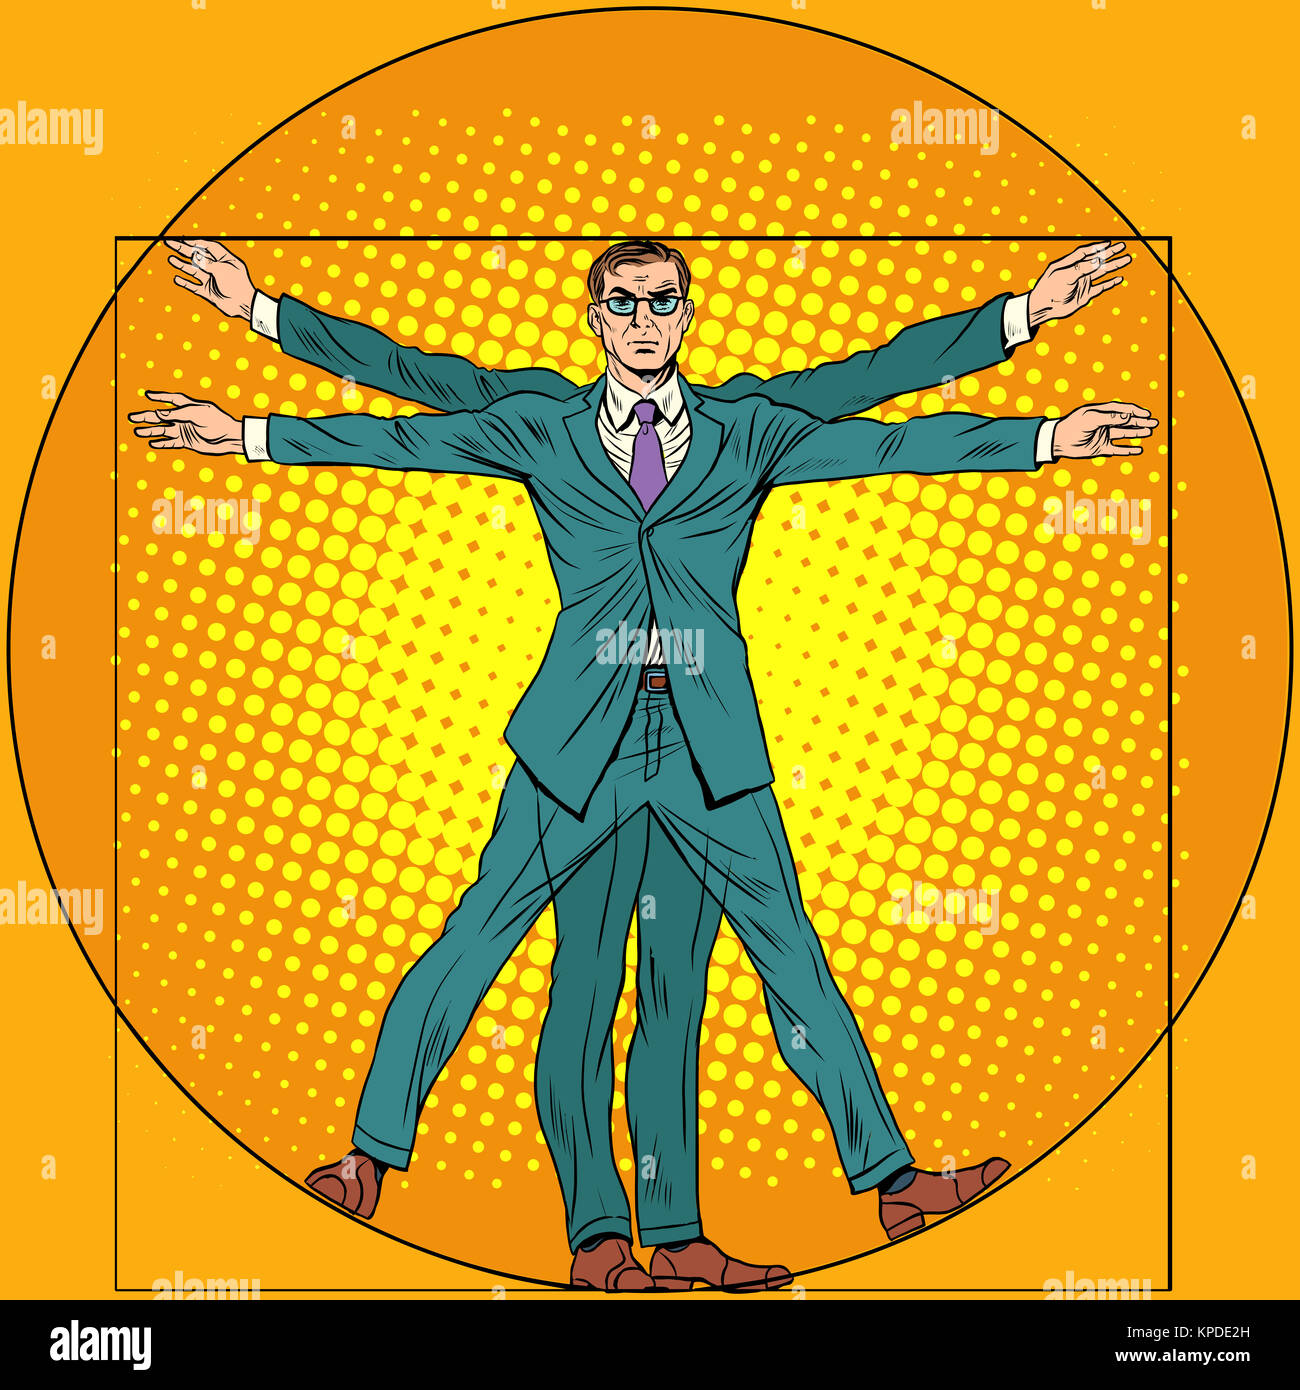 Vitruvian Man Drawing Stock Photos & Vitruvian Man Drawing ...